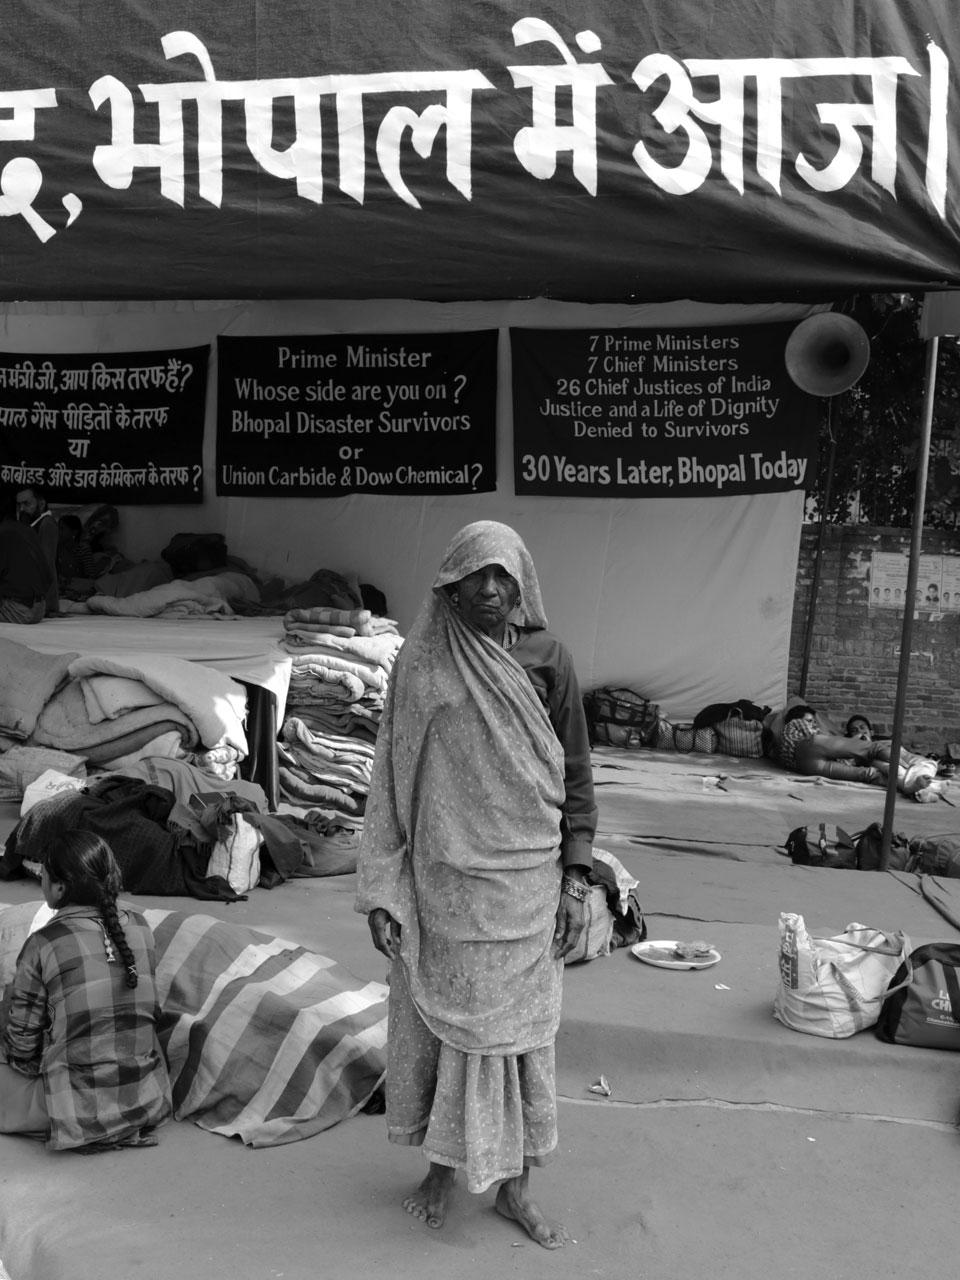 Living with Bhopal disaster